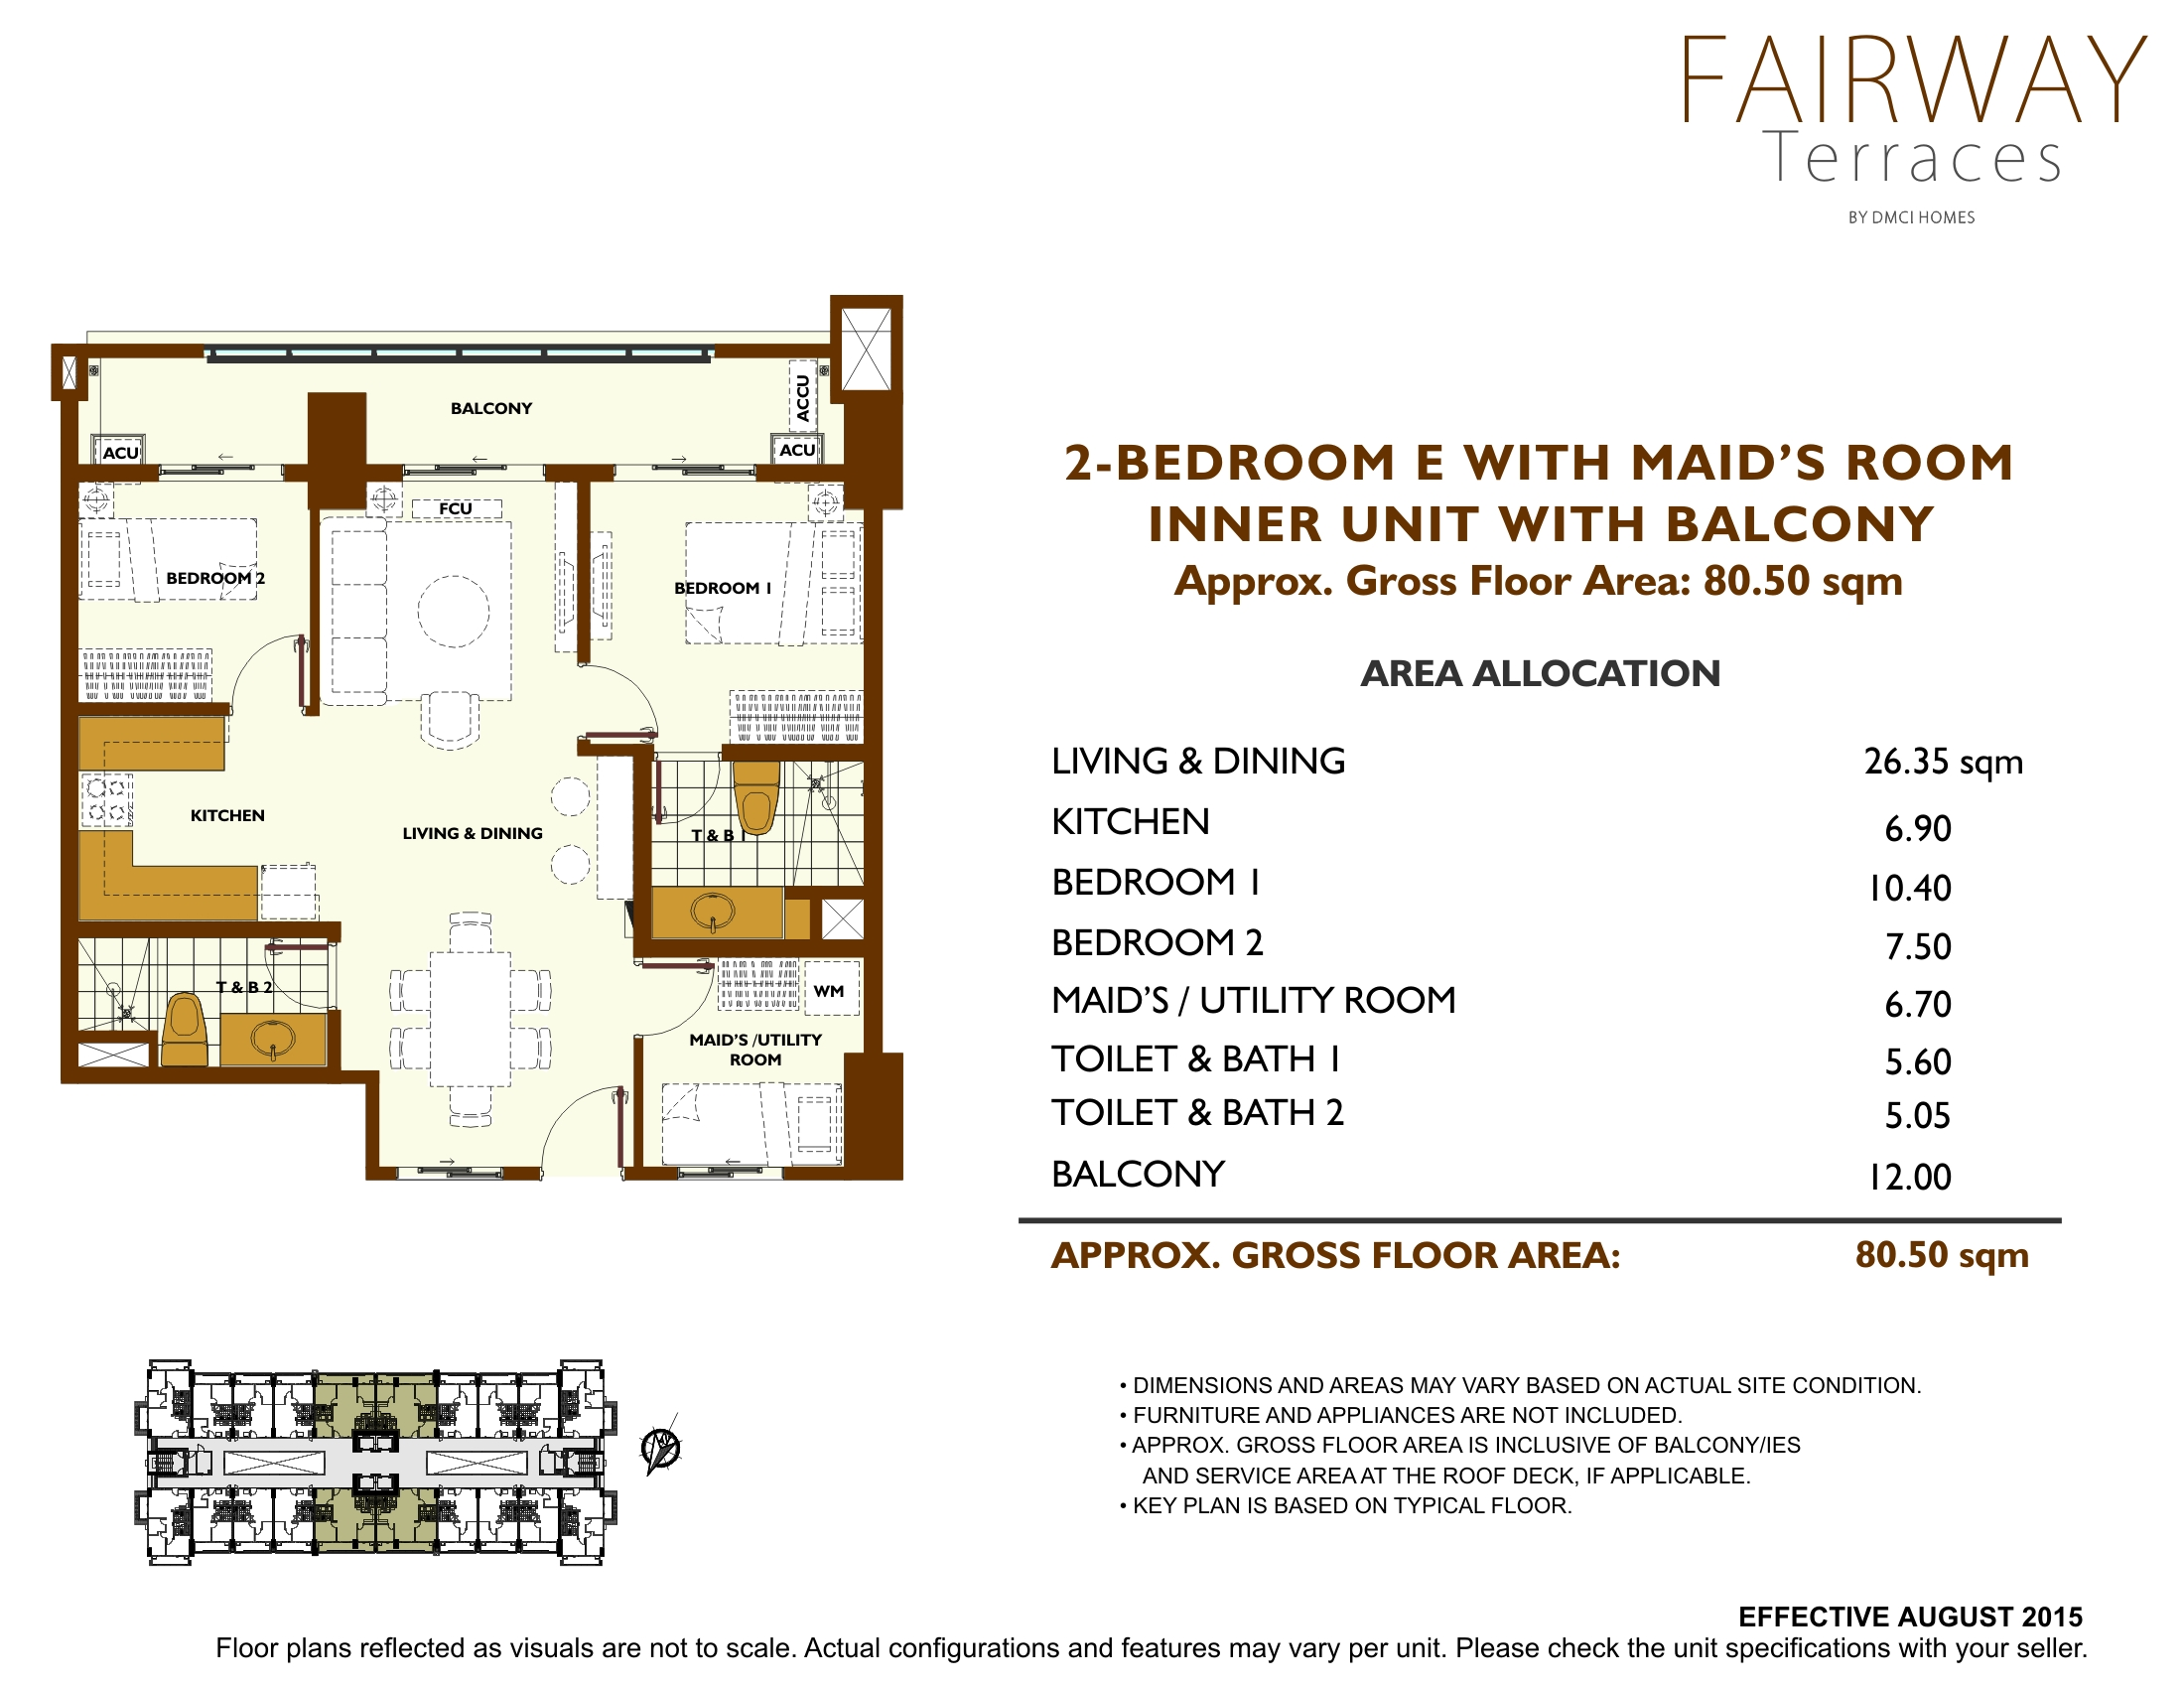 fairway-terraces-2br-e-with-maids-room-inner-unit-with-balcony